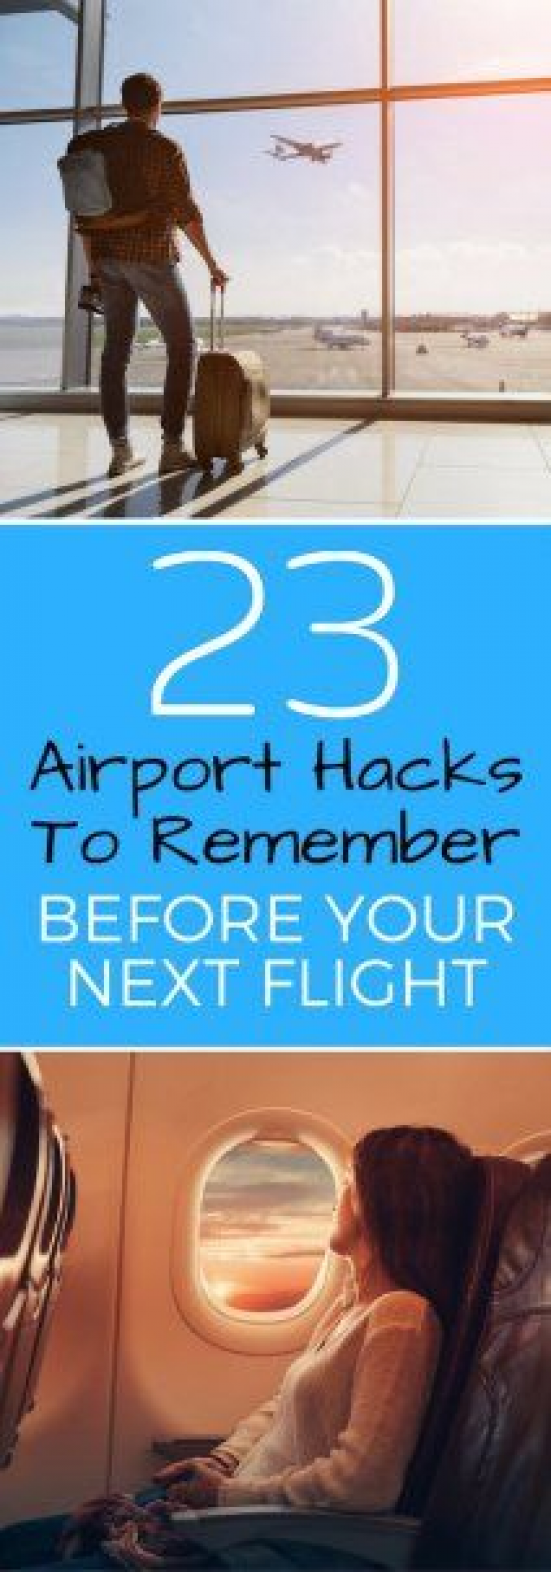 23 Airport Hacks to Remember Before Your Next Flight   Travel Planning Tips   How To Save Money On Flights   #bestintravel #traveltips #travel #travelhacks #flighthacks #travelhacks #travel #hacks